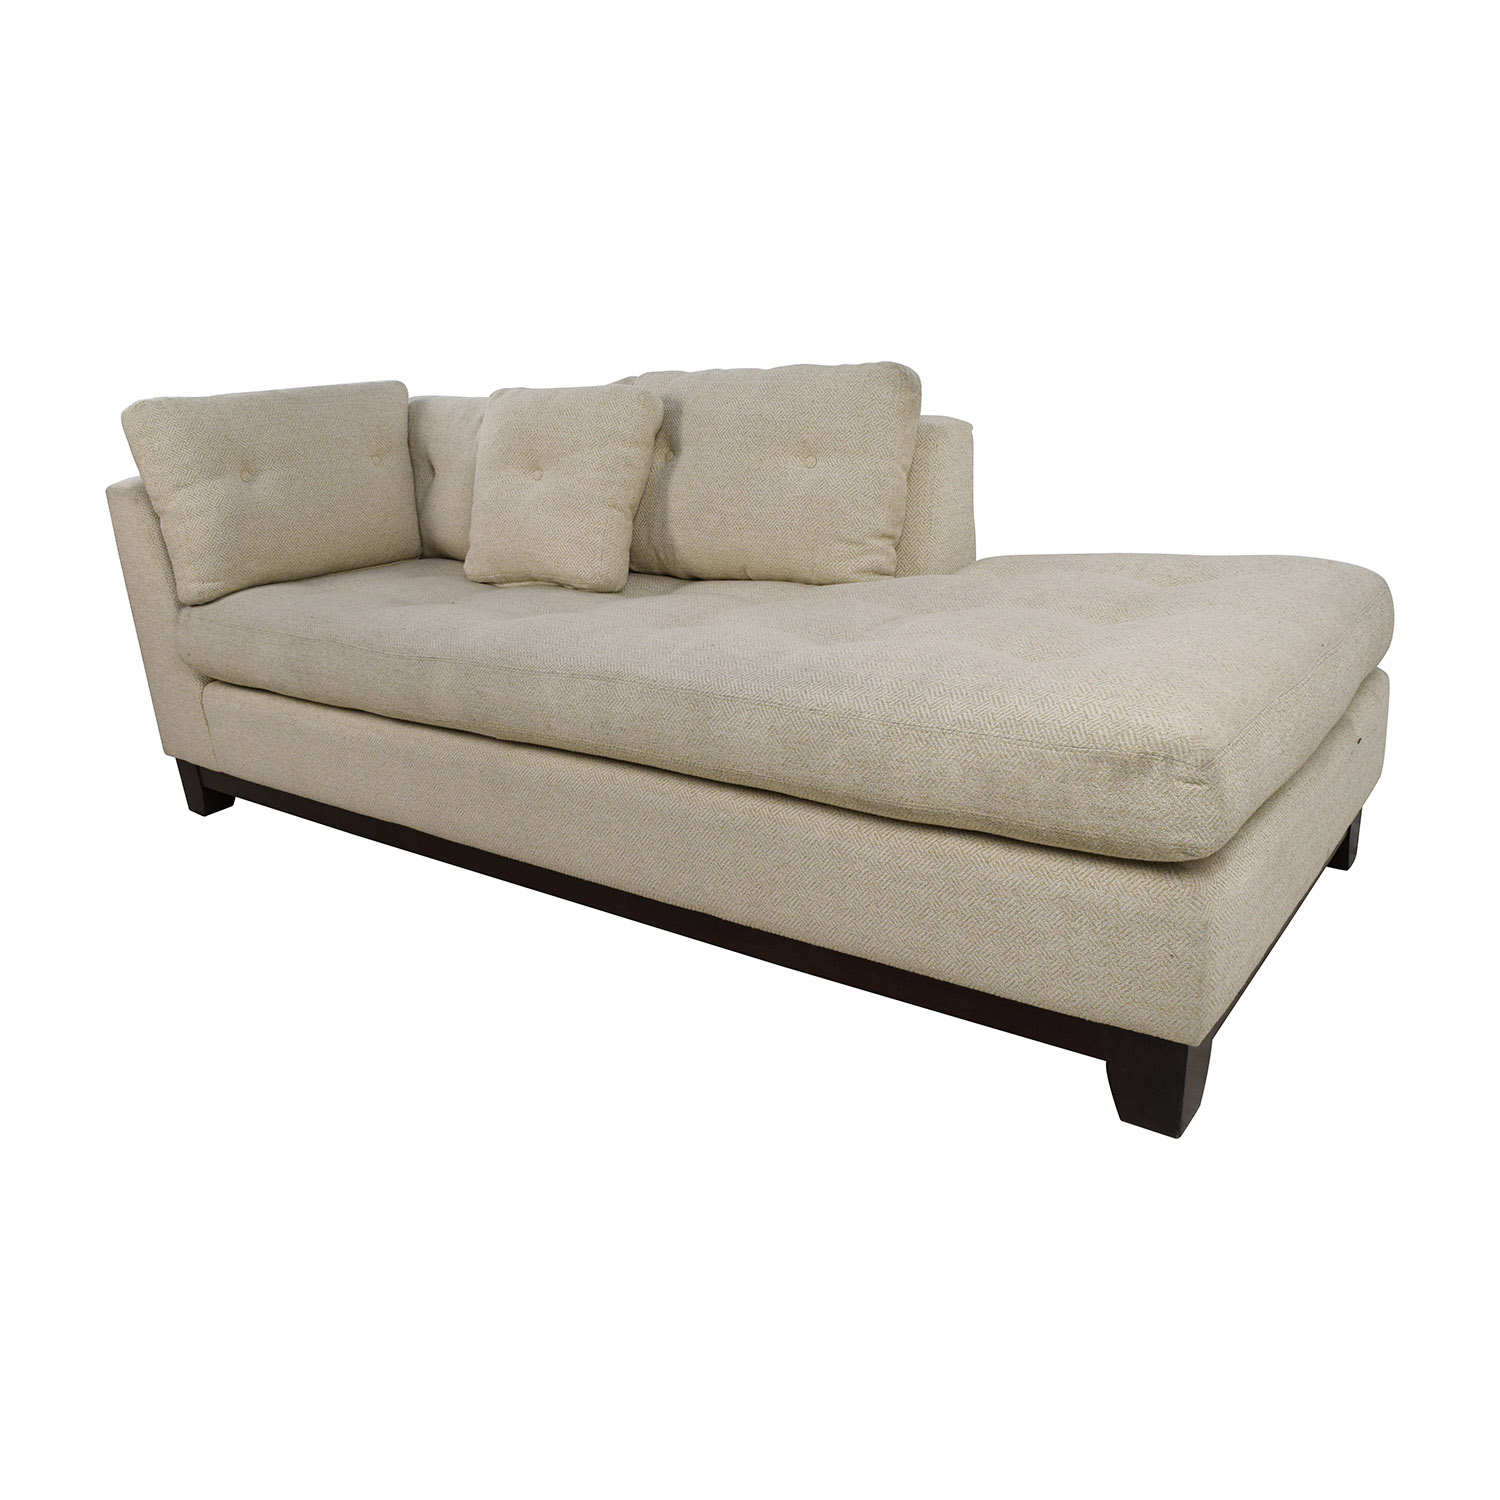 79 off freestyle freestyle tufted natural fabric sofa chaise sofas. Black Bedroom Furniture Sets. Home Design Ideas